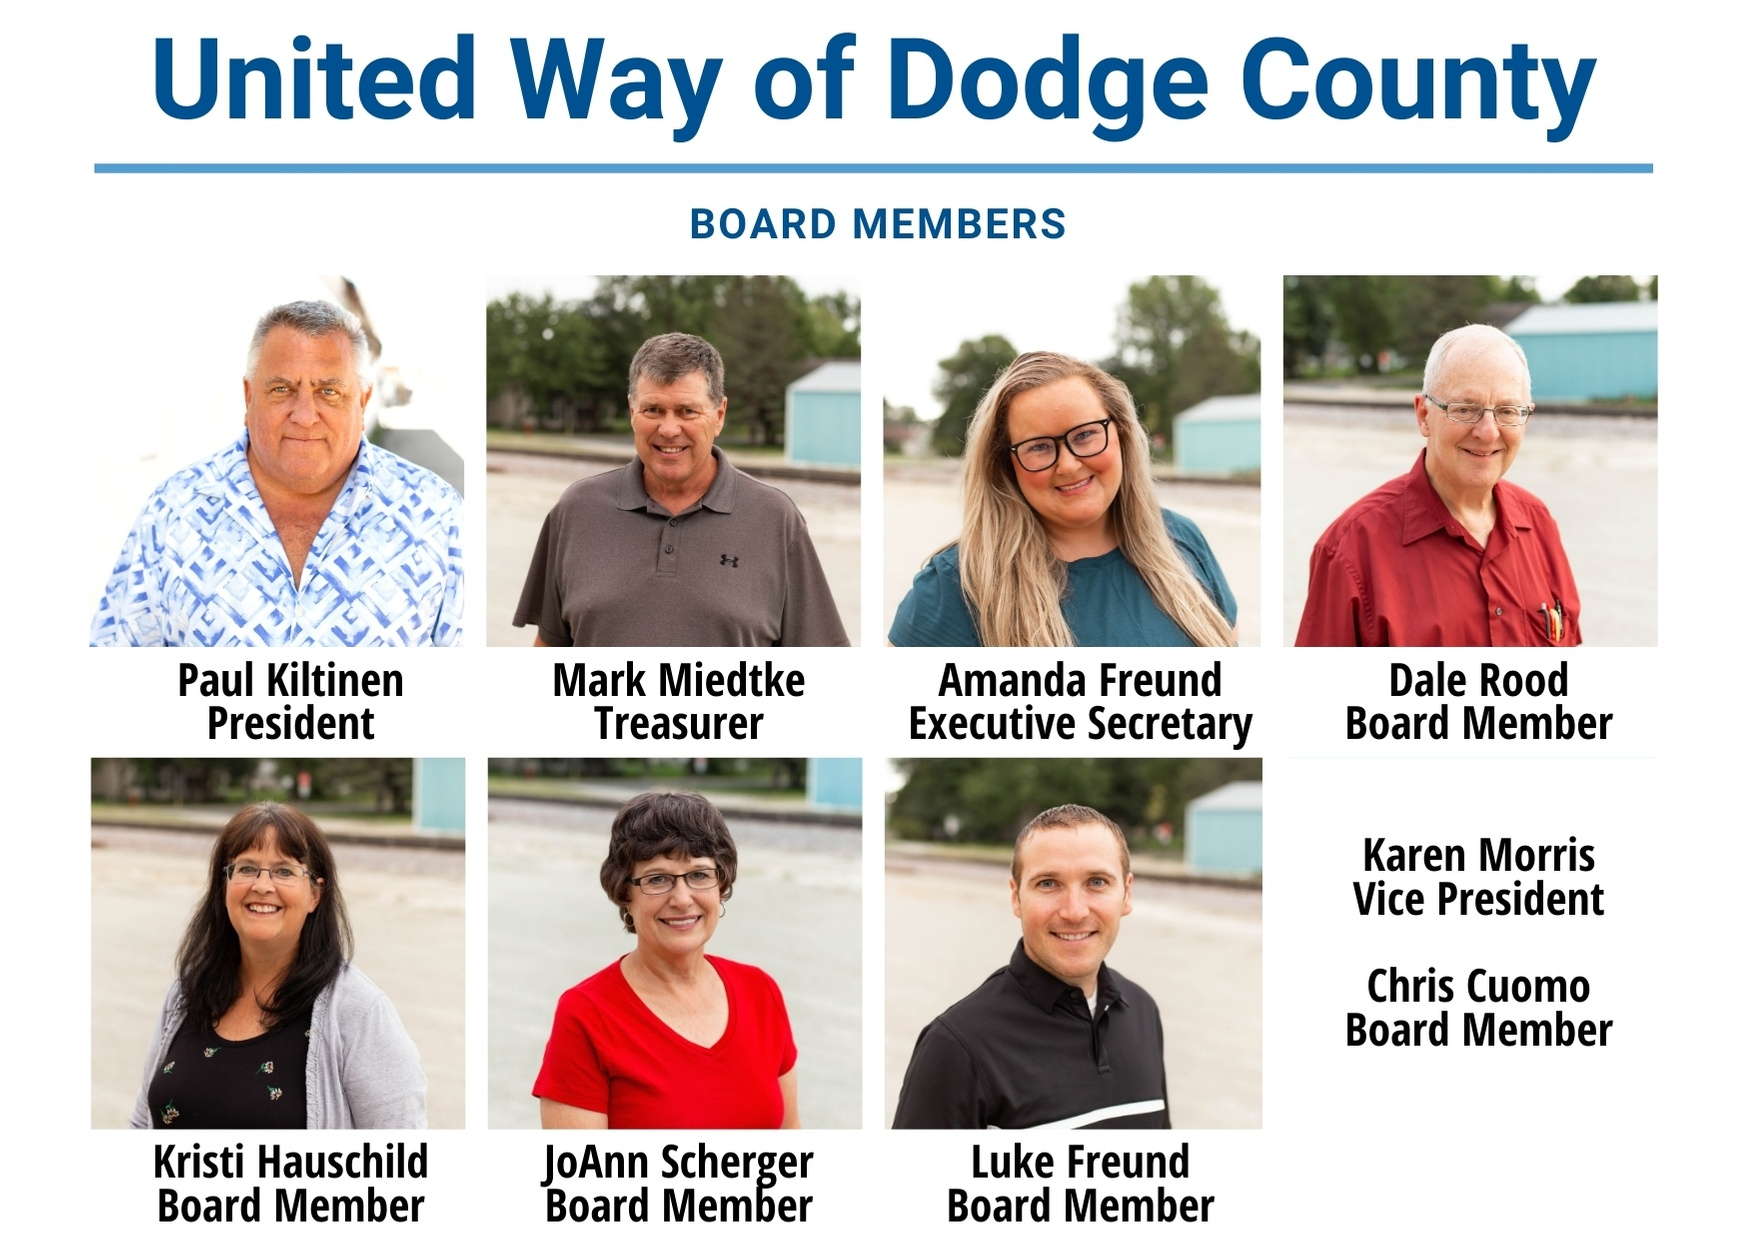 United Way of Dodge County board members